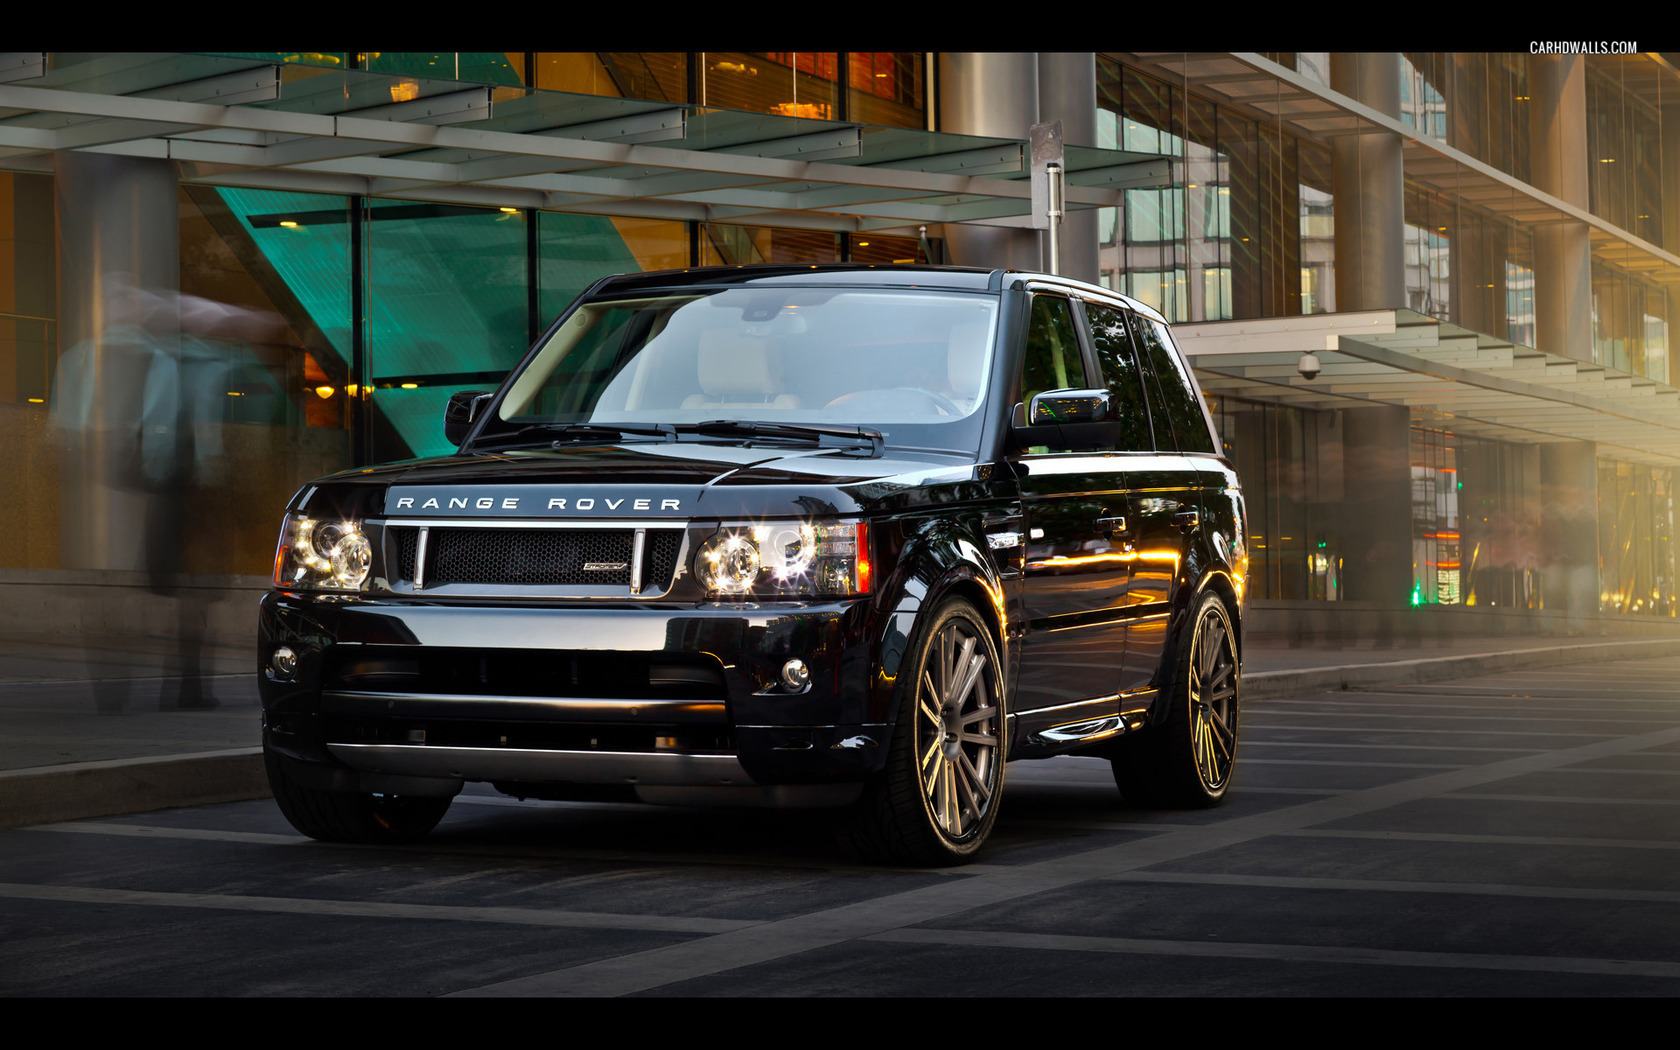 1680x1050 - Range Rover Wallpapers 16